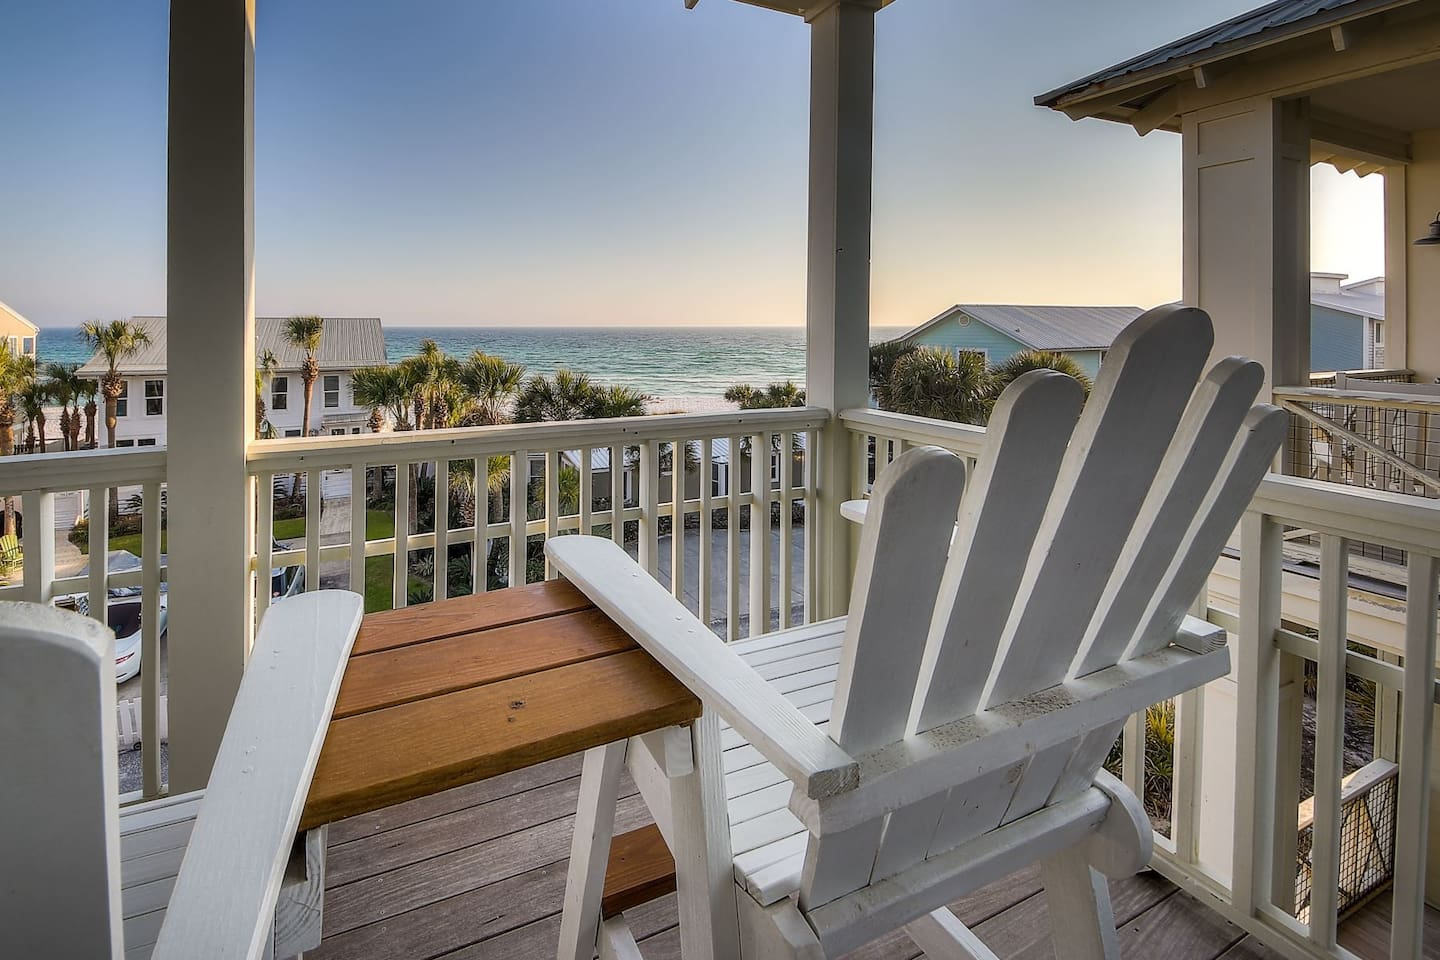 Relax on this balcony while listening to the soothing waves of the Gulf.